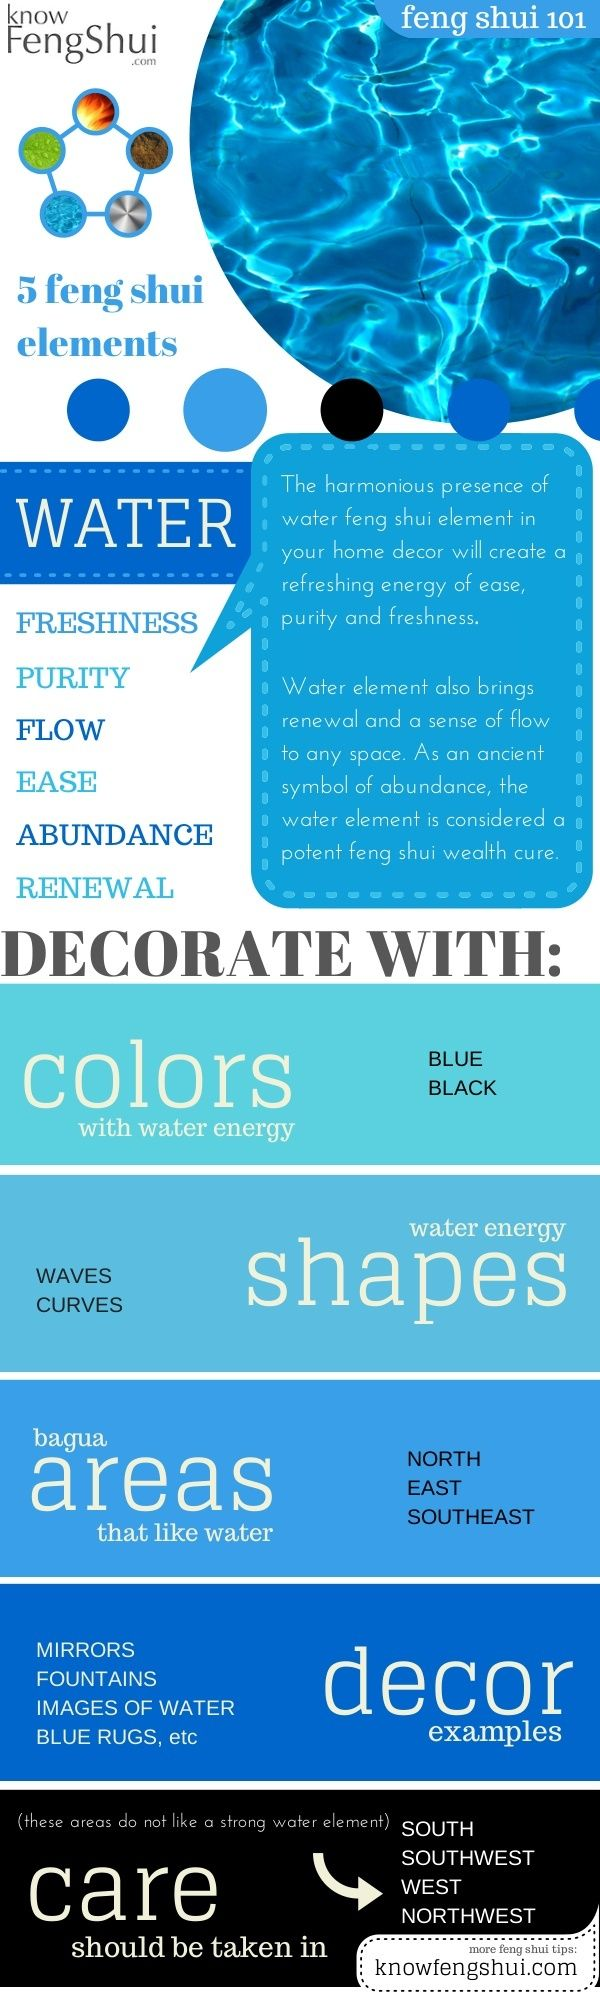 Water feng shui element decorating in your home or office. One end of the room is in the career gua.